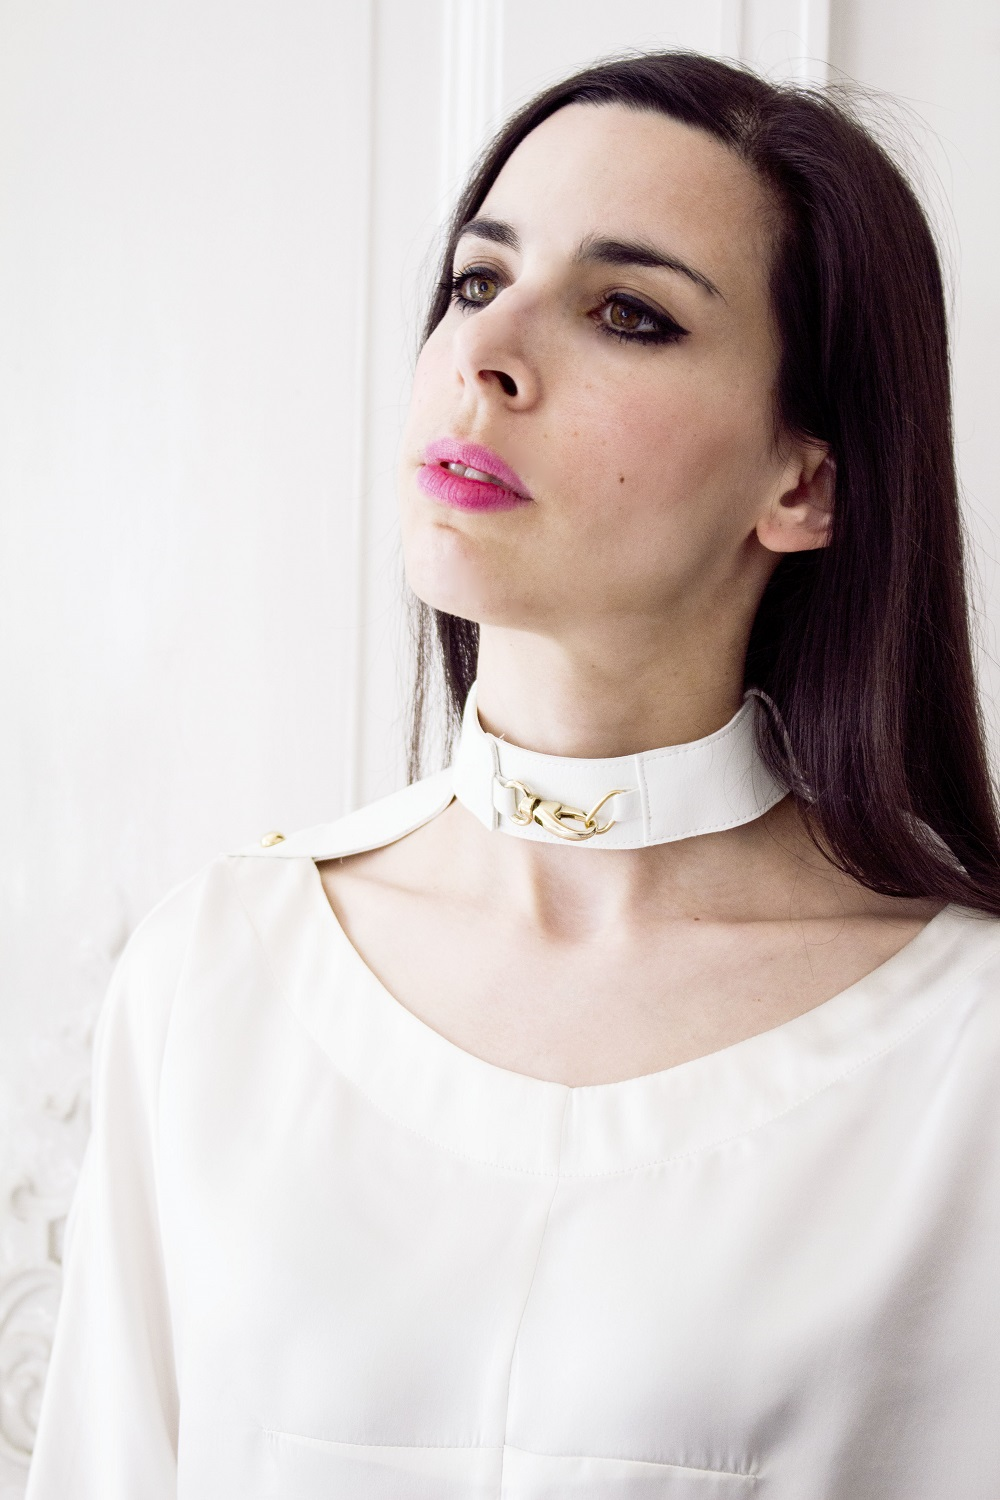 Between white outfit neckband